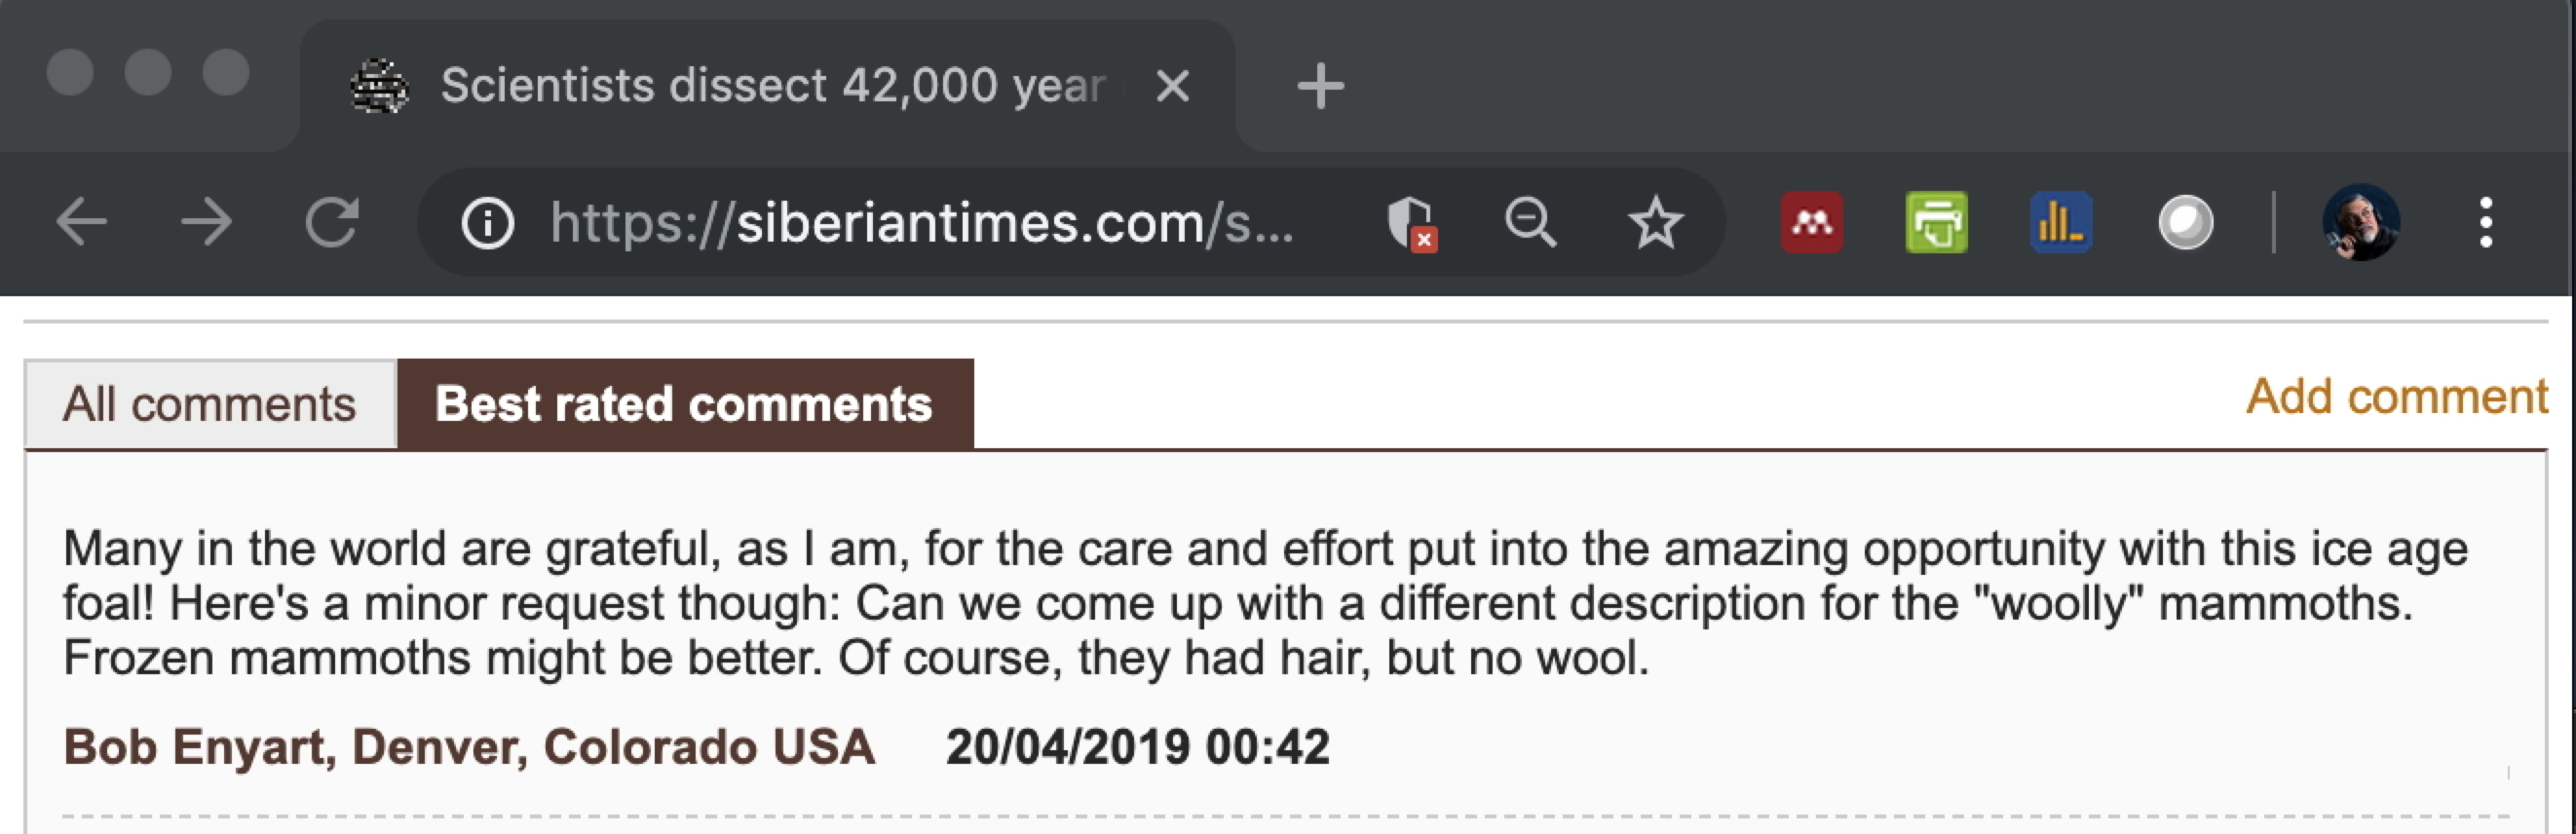 Enyart's comment on no-wool mammoths...